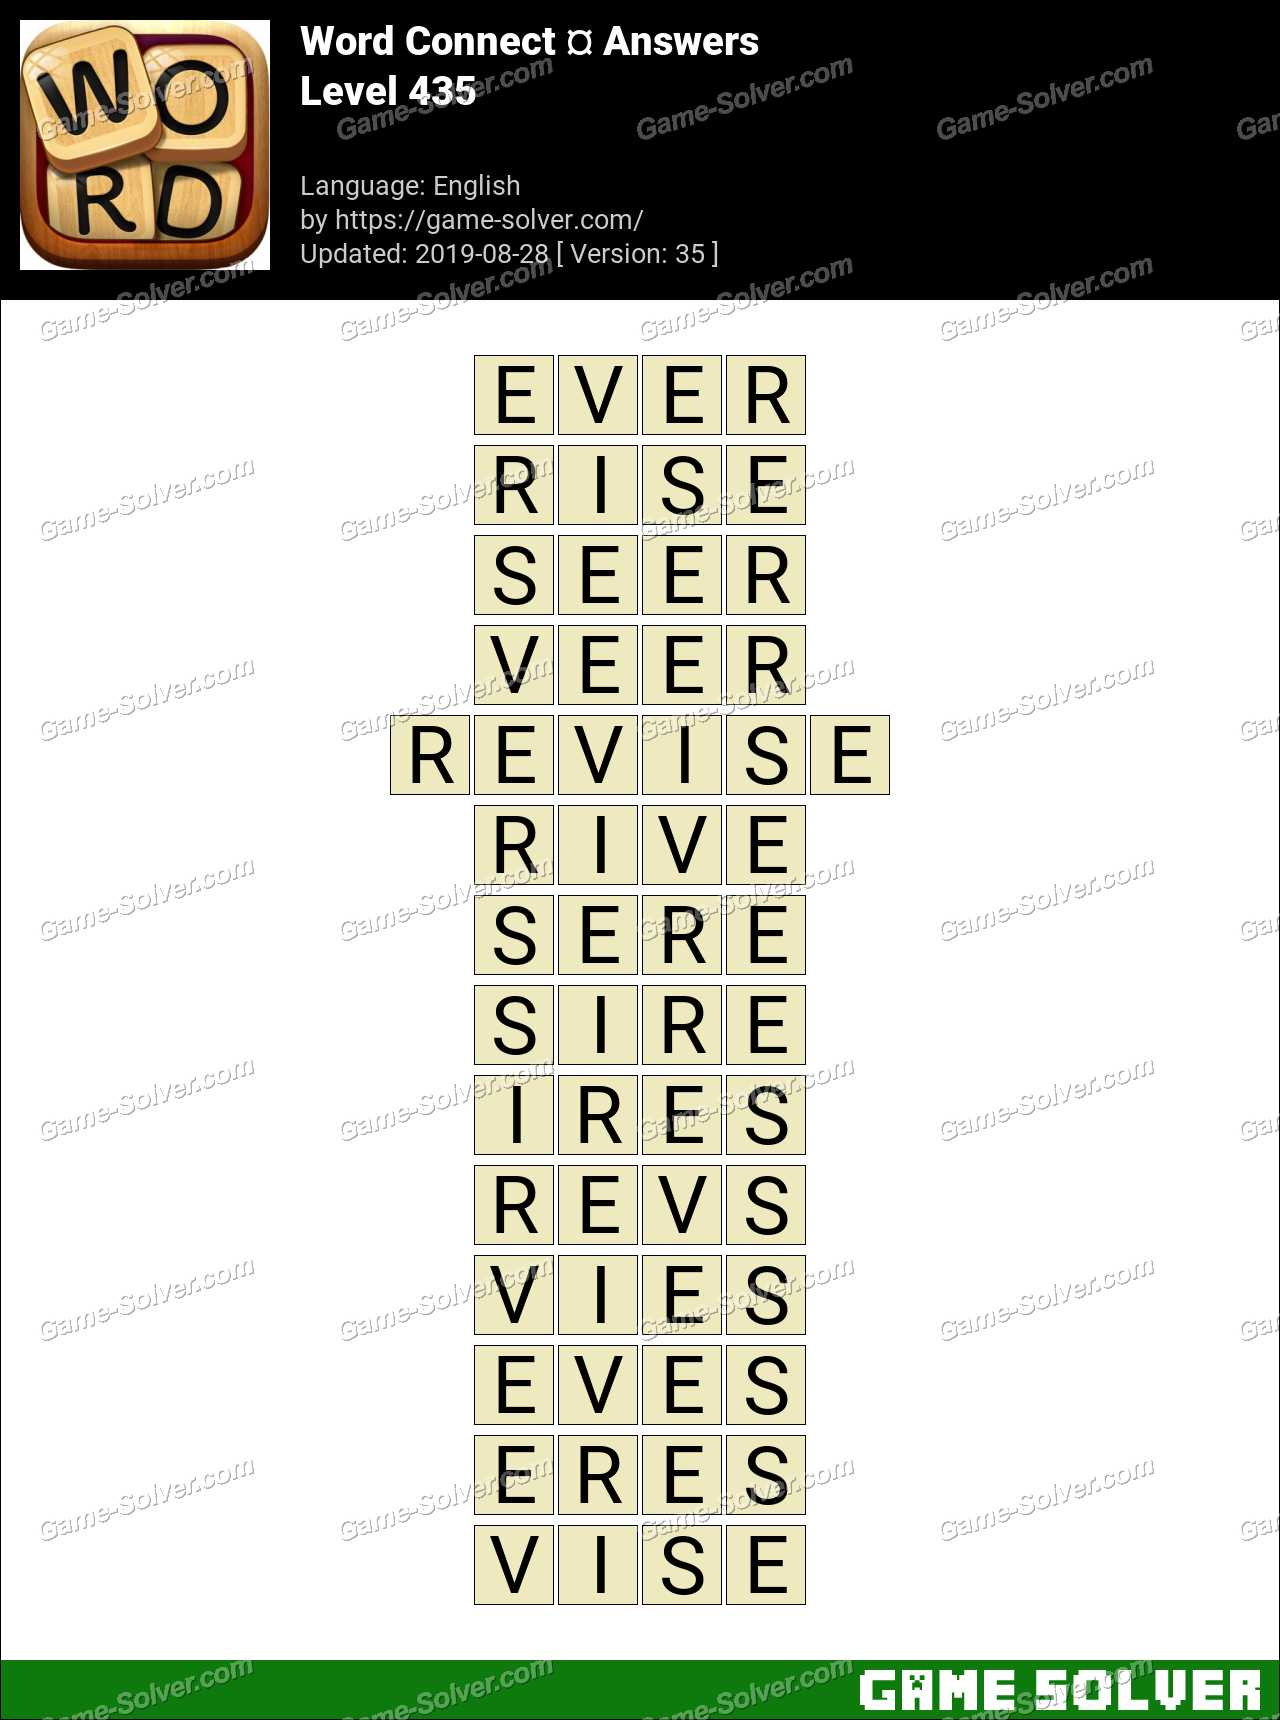 Word Connect Level 435 Answers